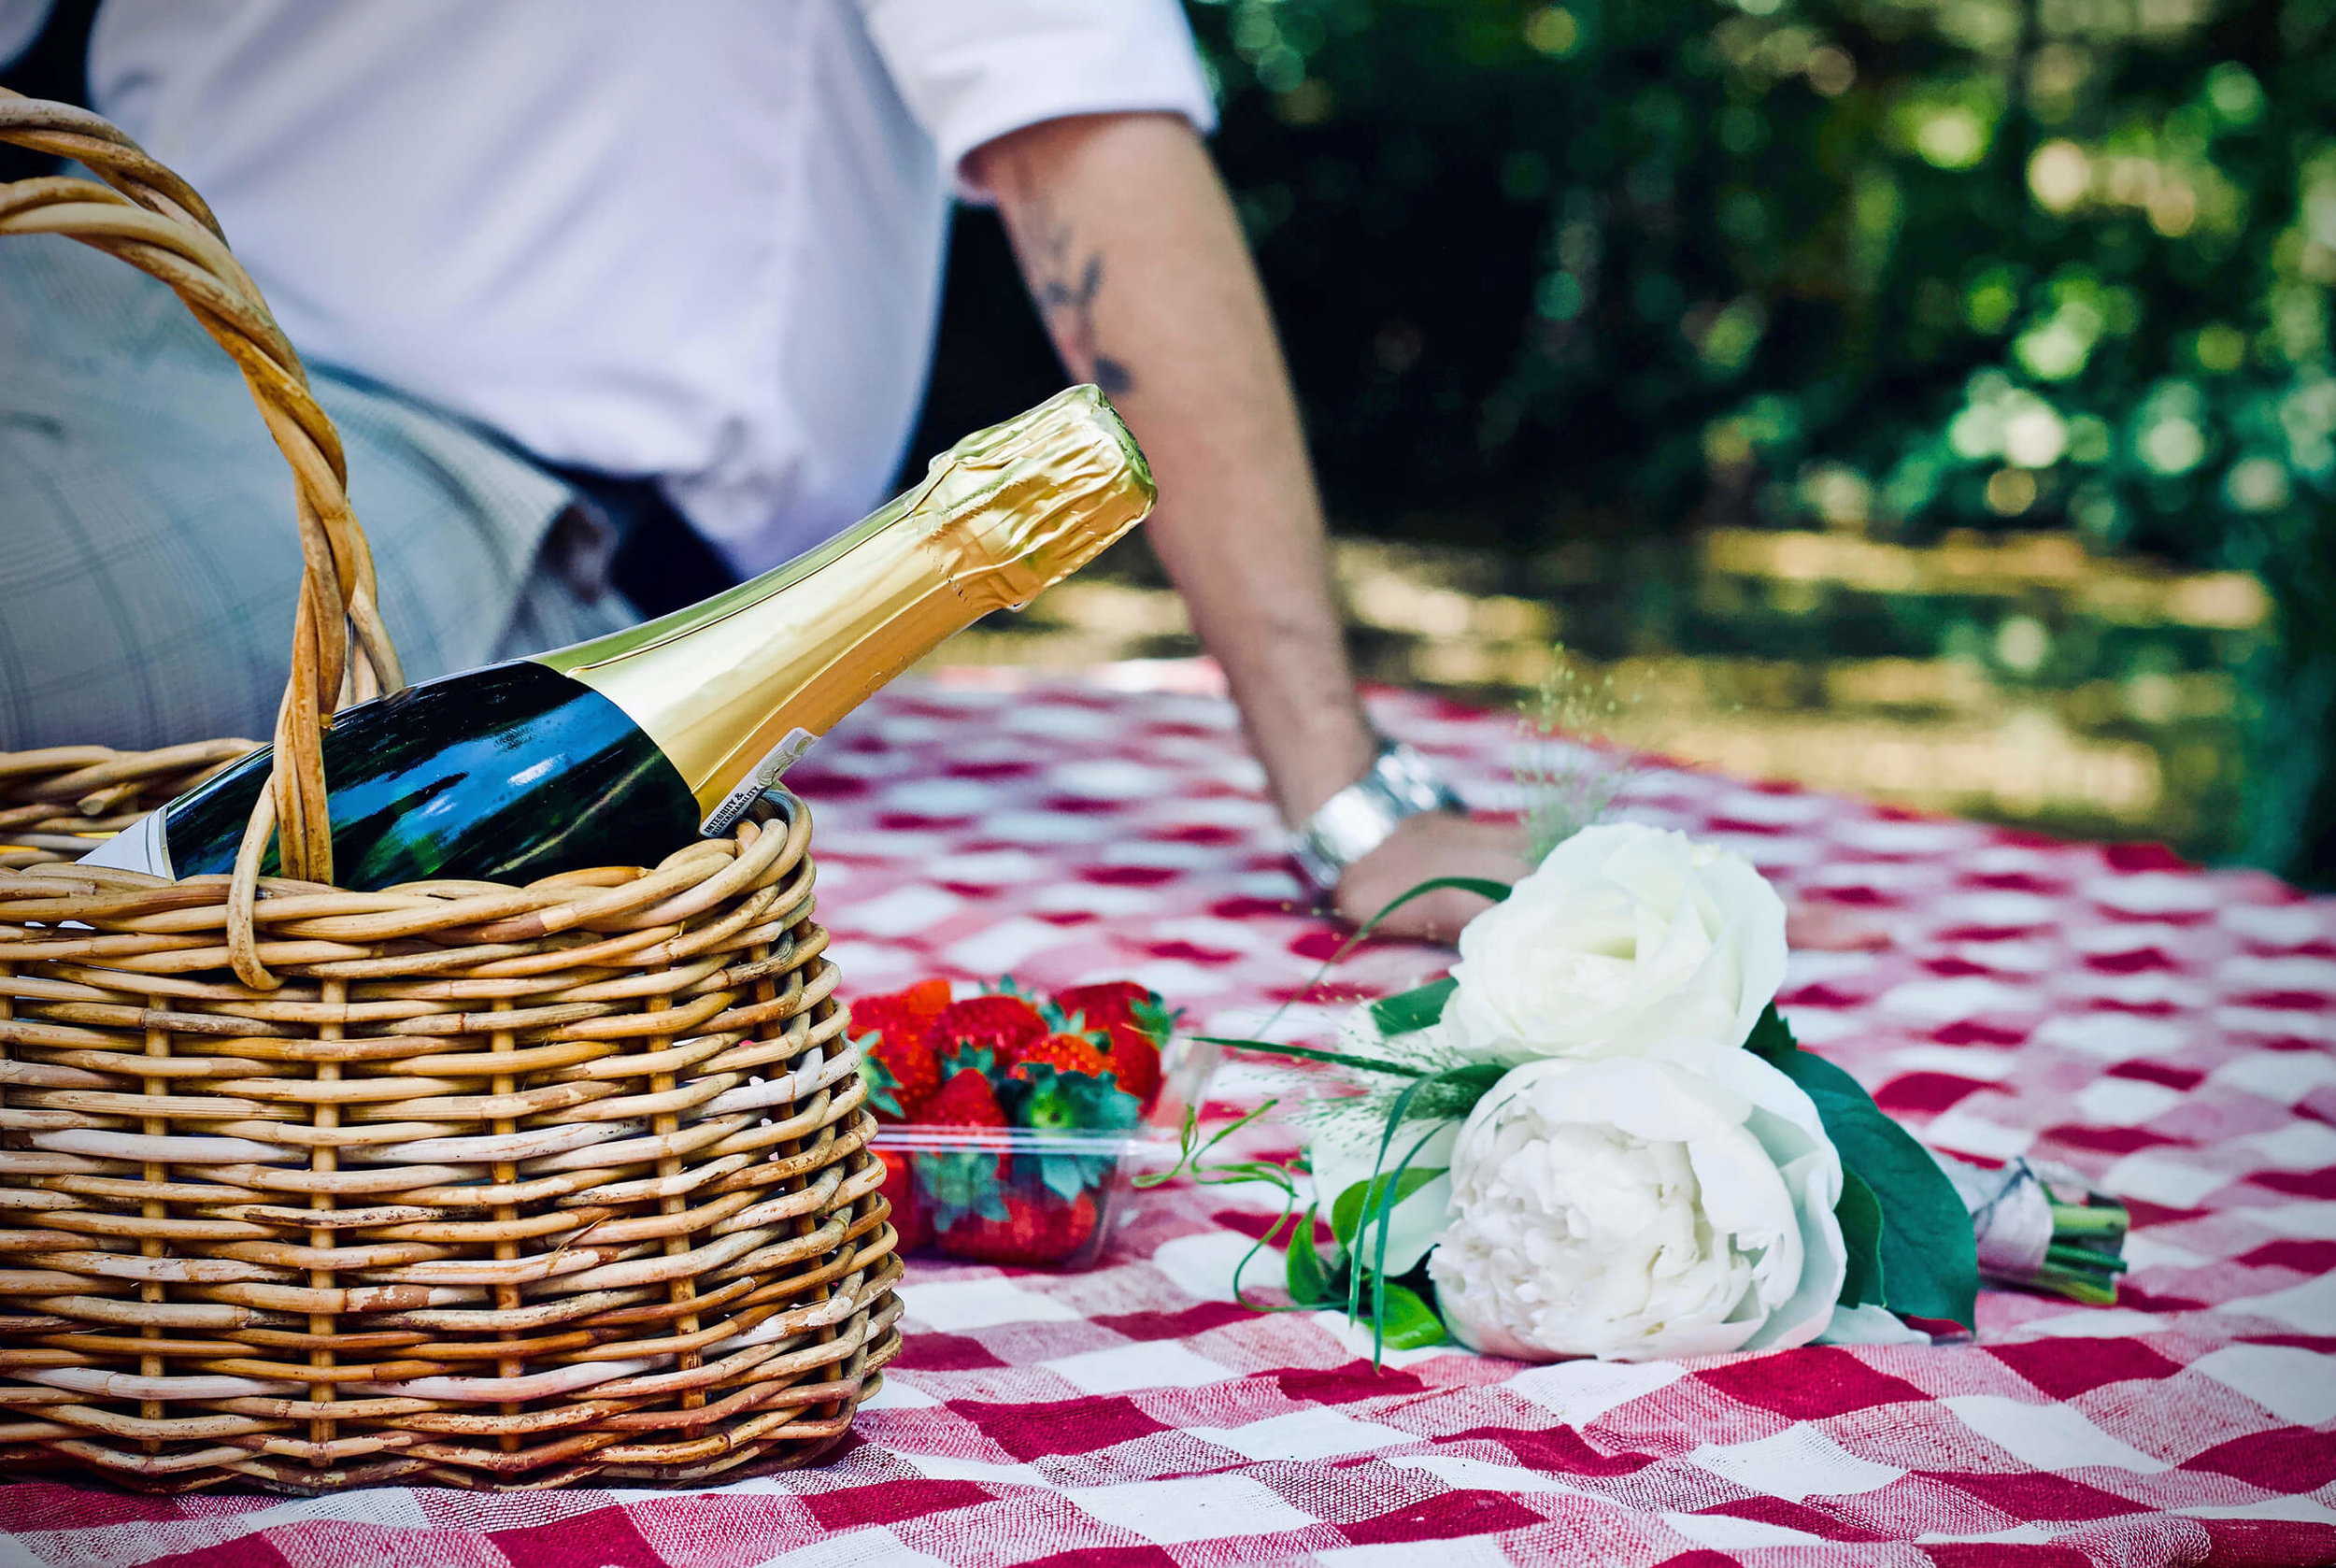 one of the best cheap date ideas is a romantic picnic